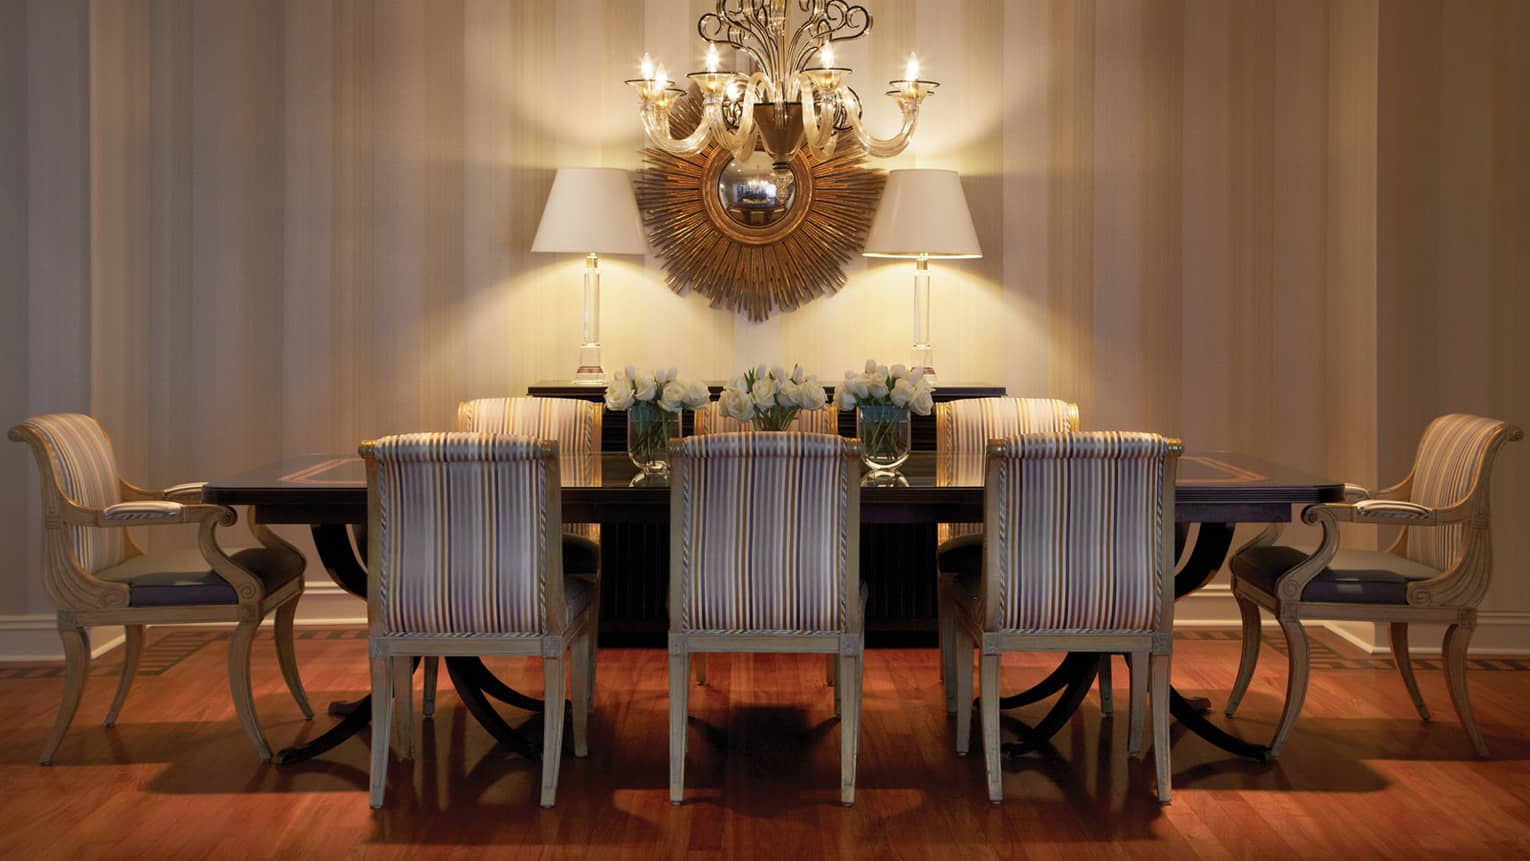 Presidential Suite private dining table with striped chairs, white flowers, chandelier, gold art